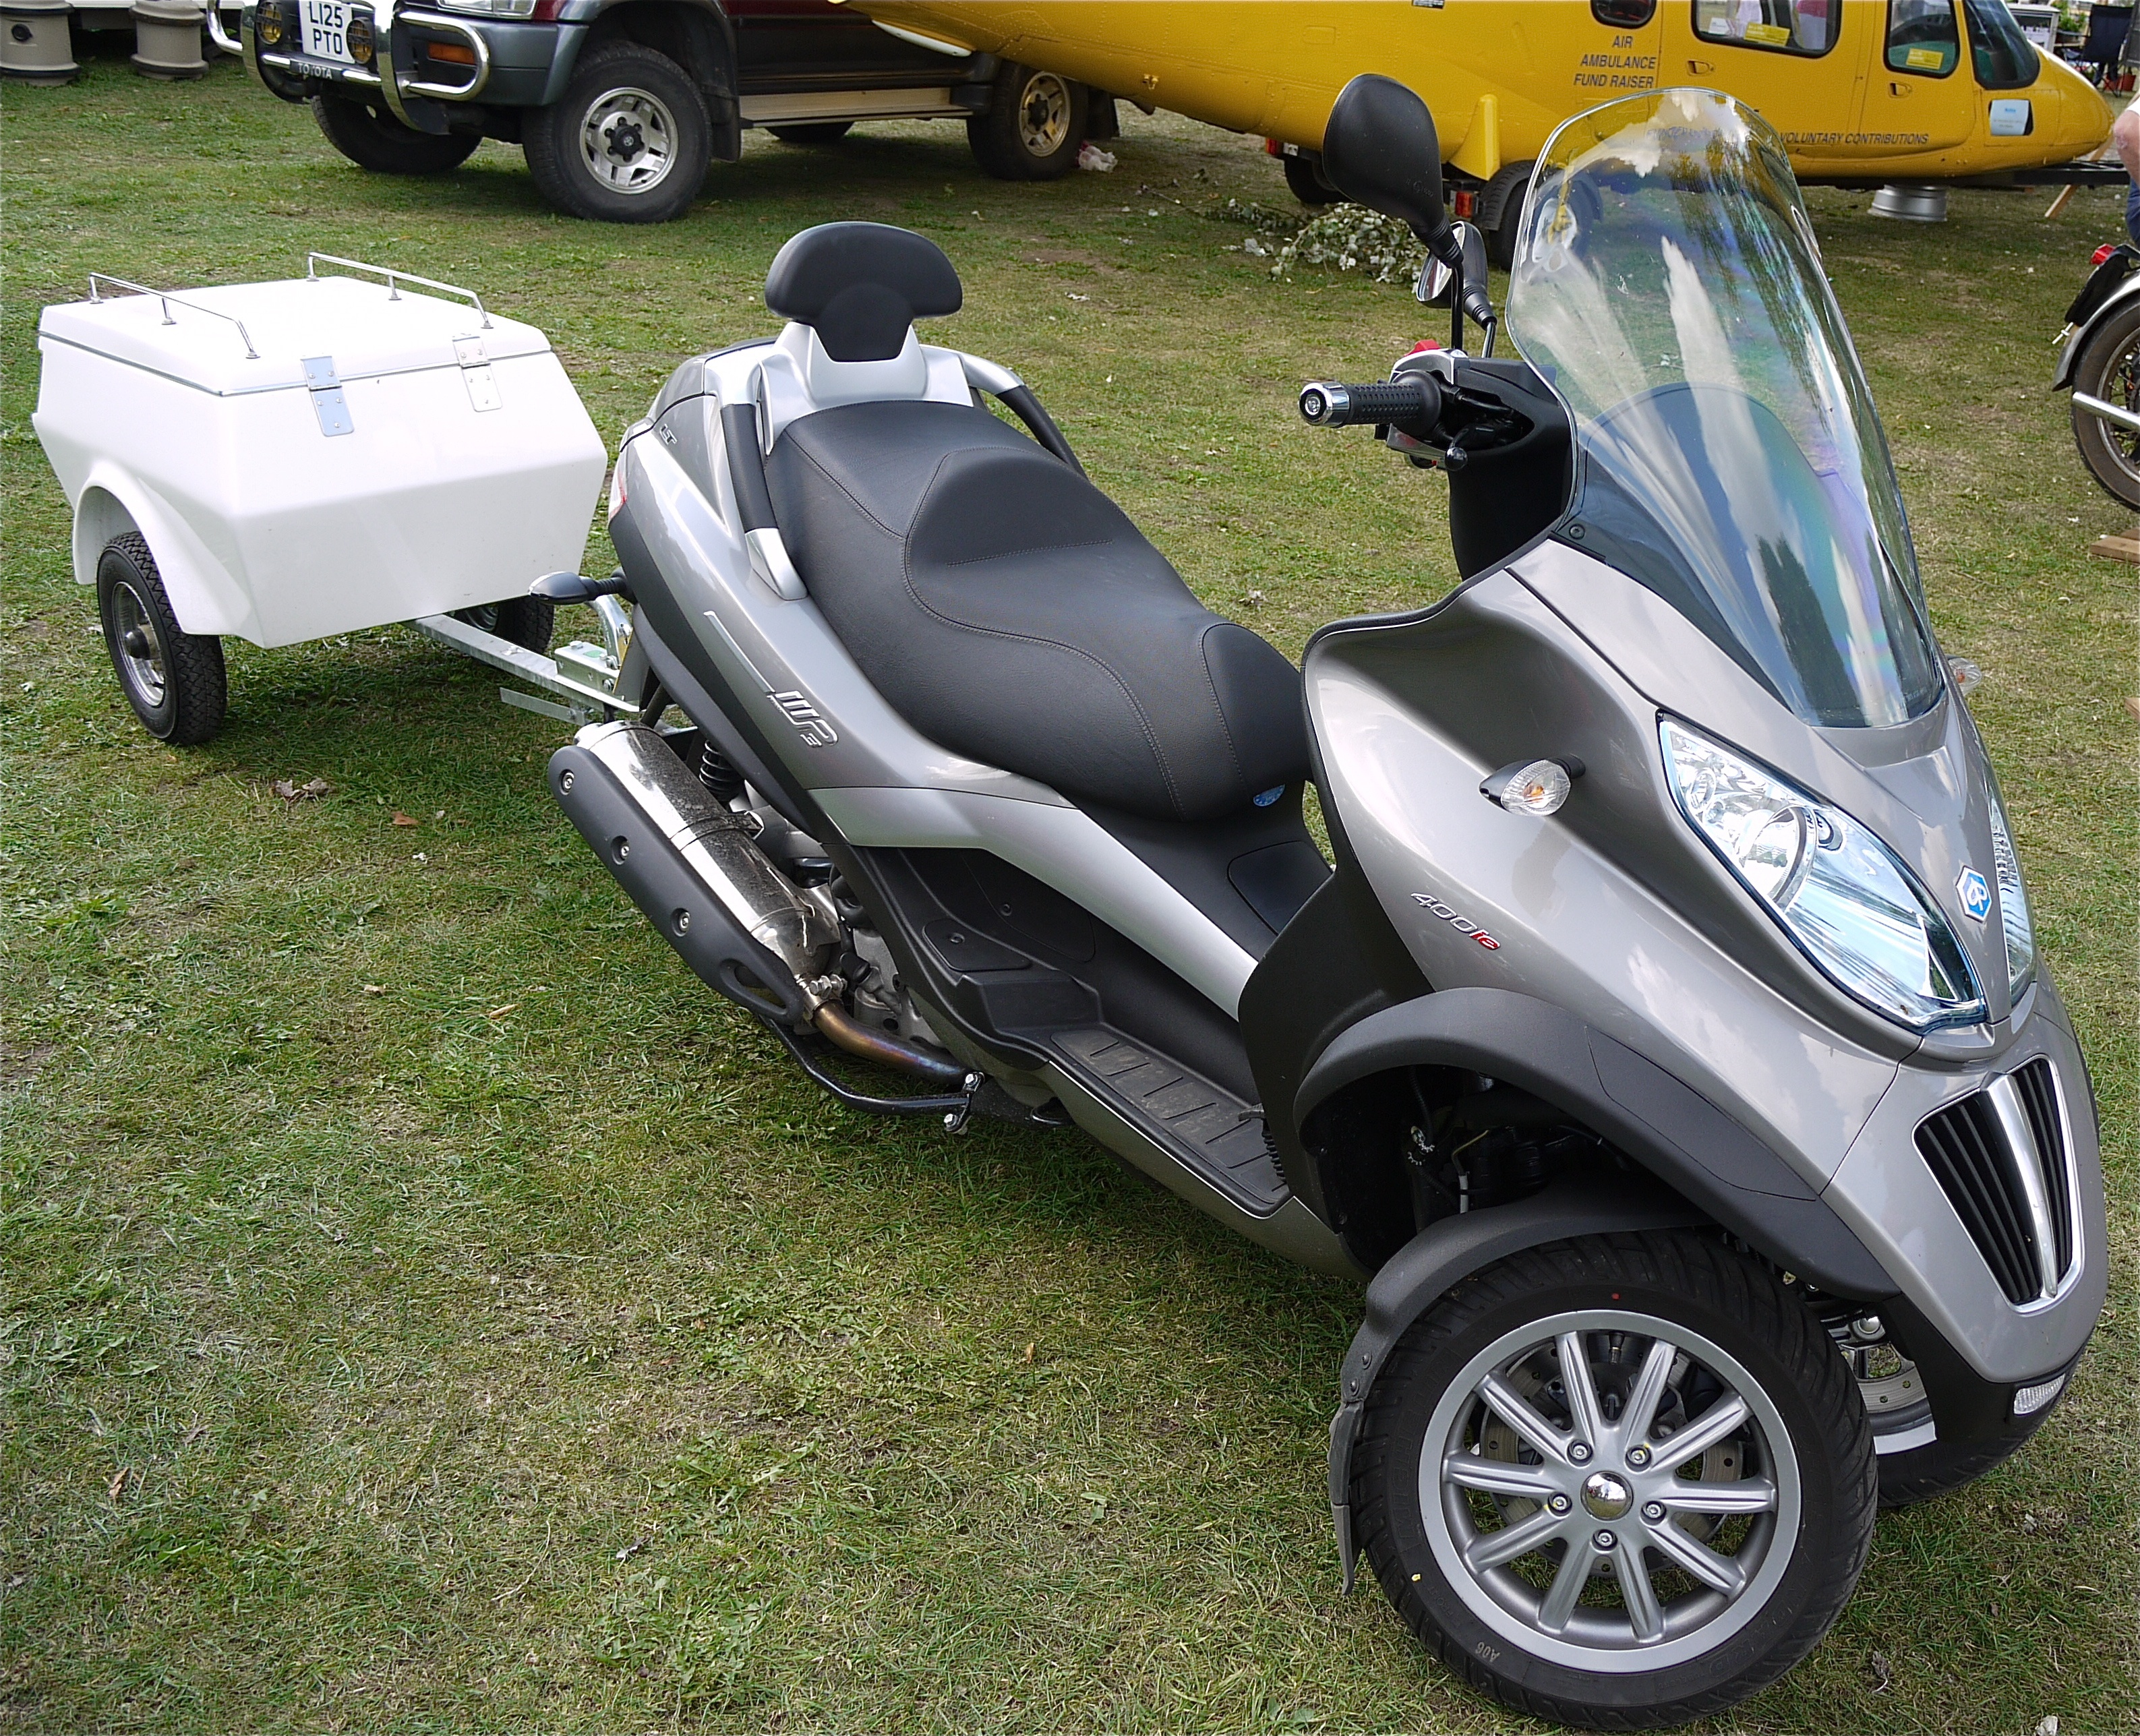 file:piaggio mp3 lt 400 3 wheel scooter - trailer - flickr - mick